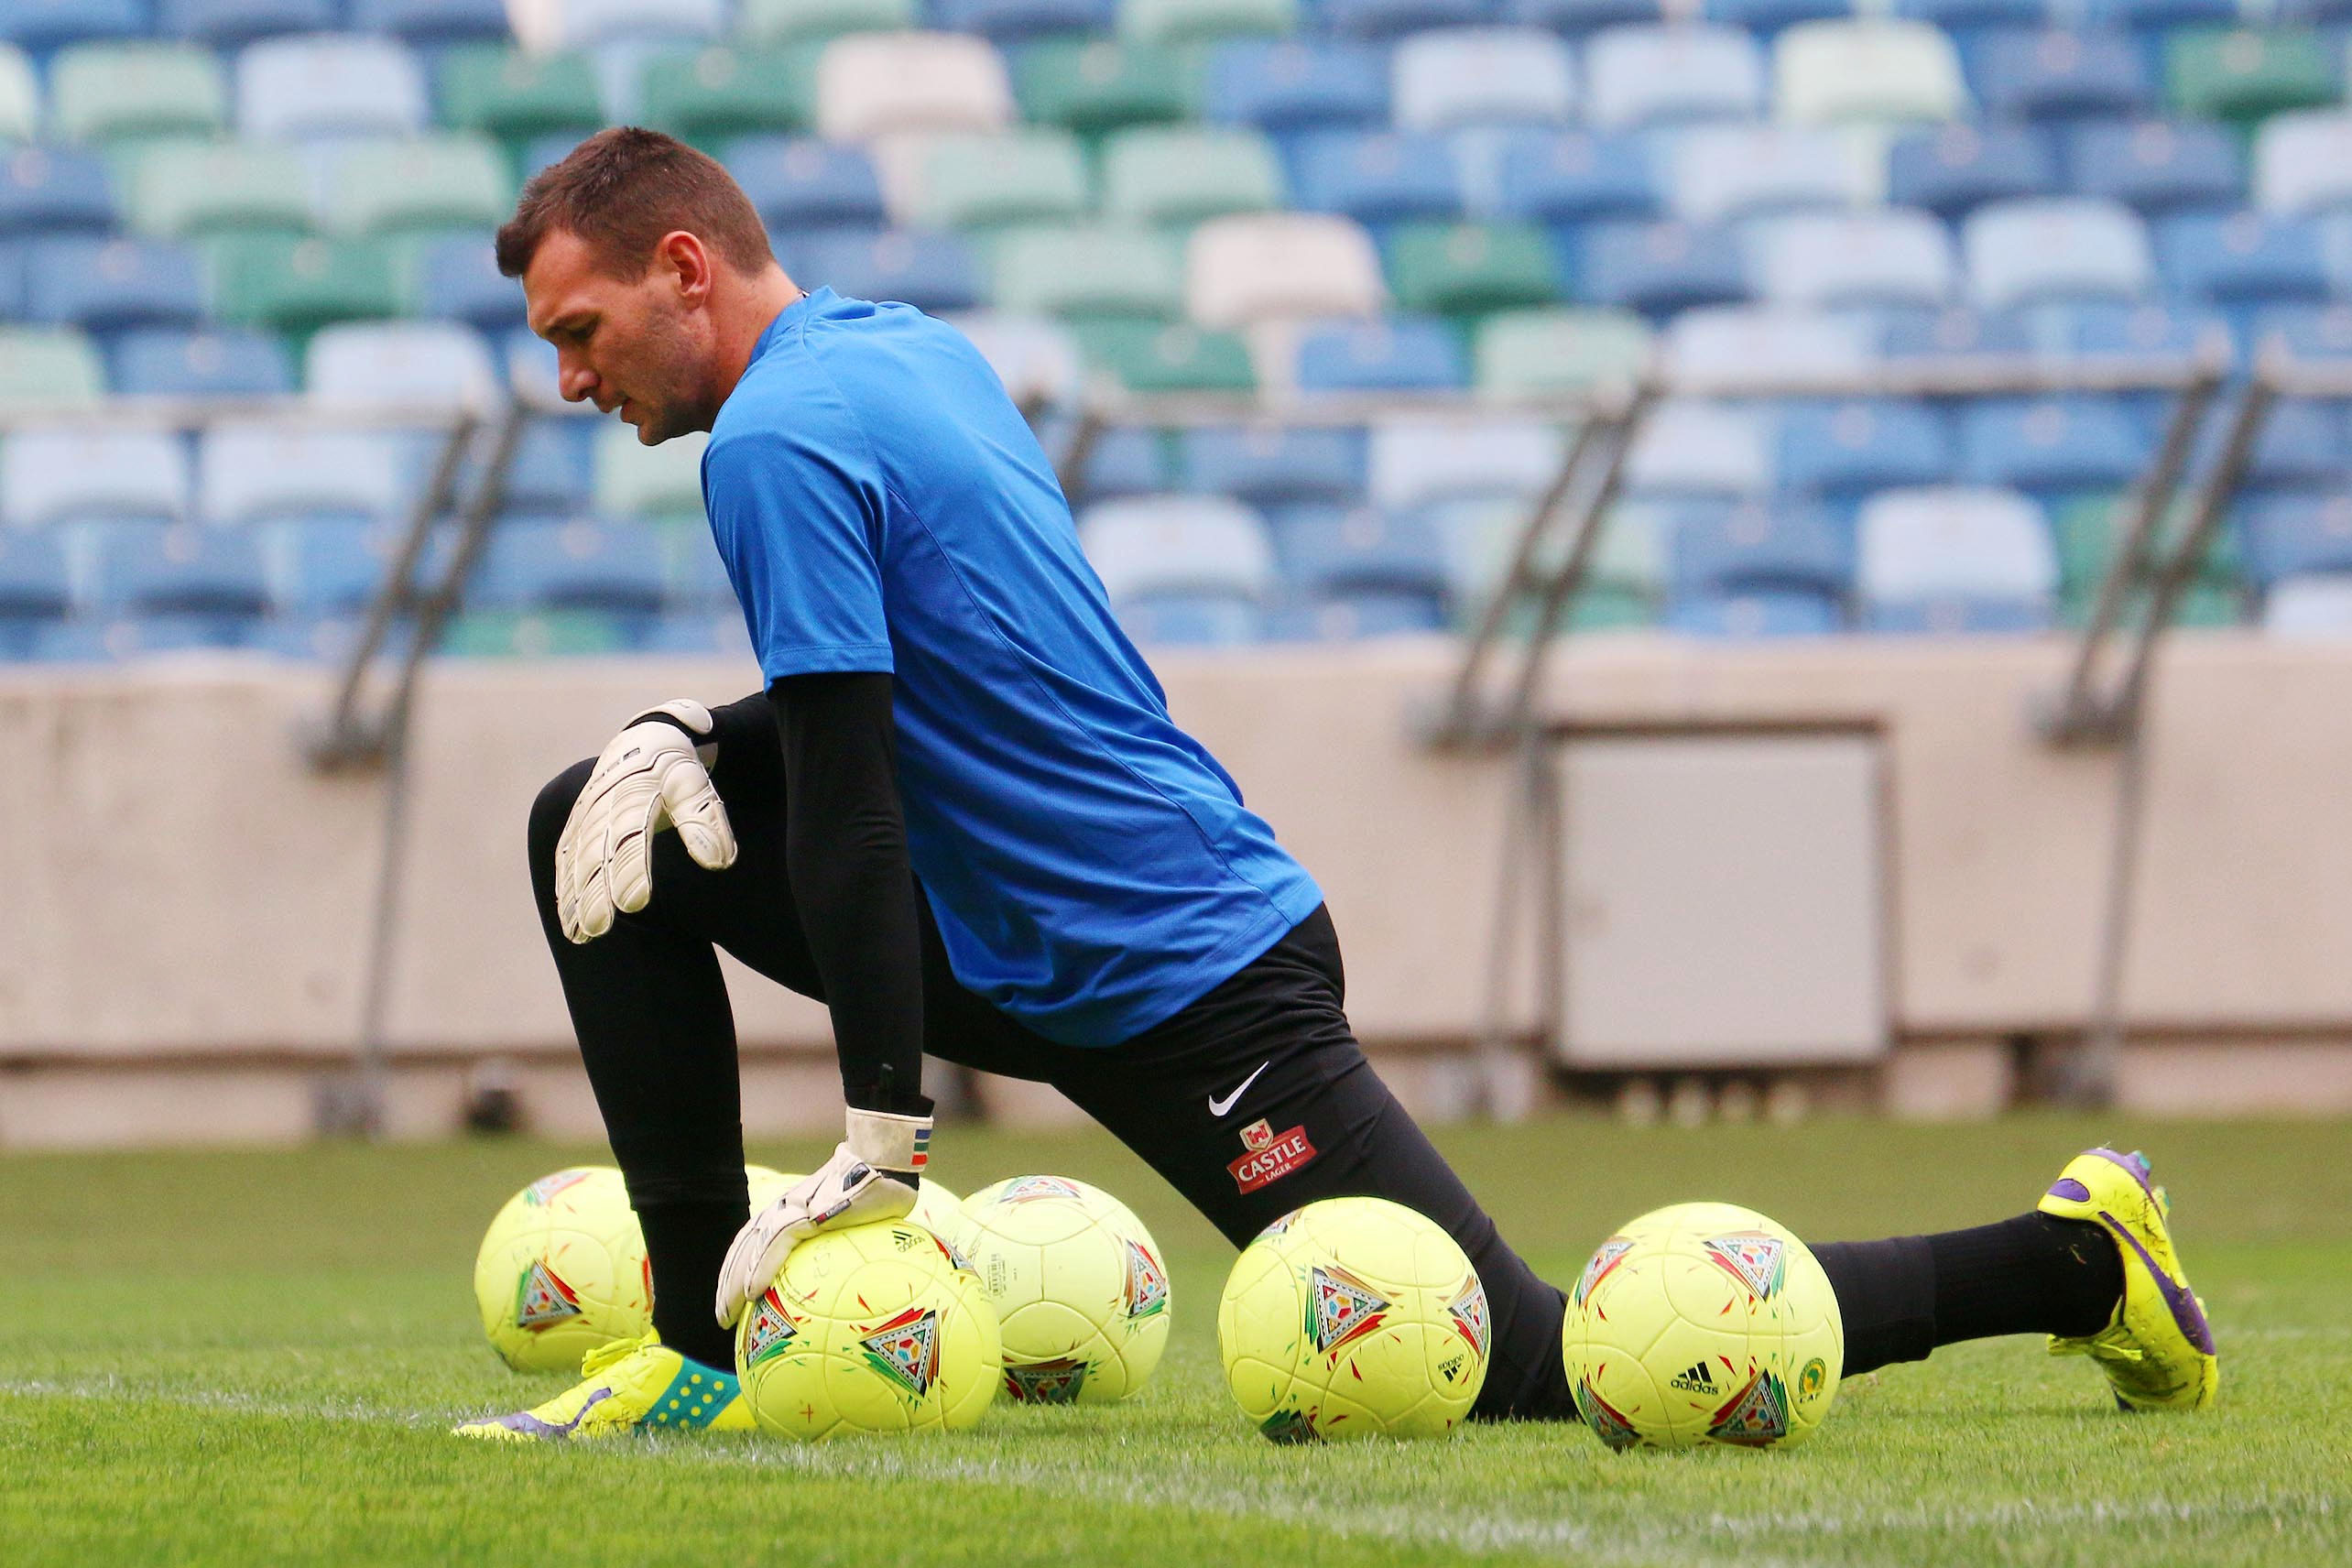 12 November 2014: Darren Keet during the Bafana Bafana training session at Moses Mabhida Stadium in Durban. (Photograph by Anesh Debiky/Gallo Images)